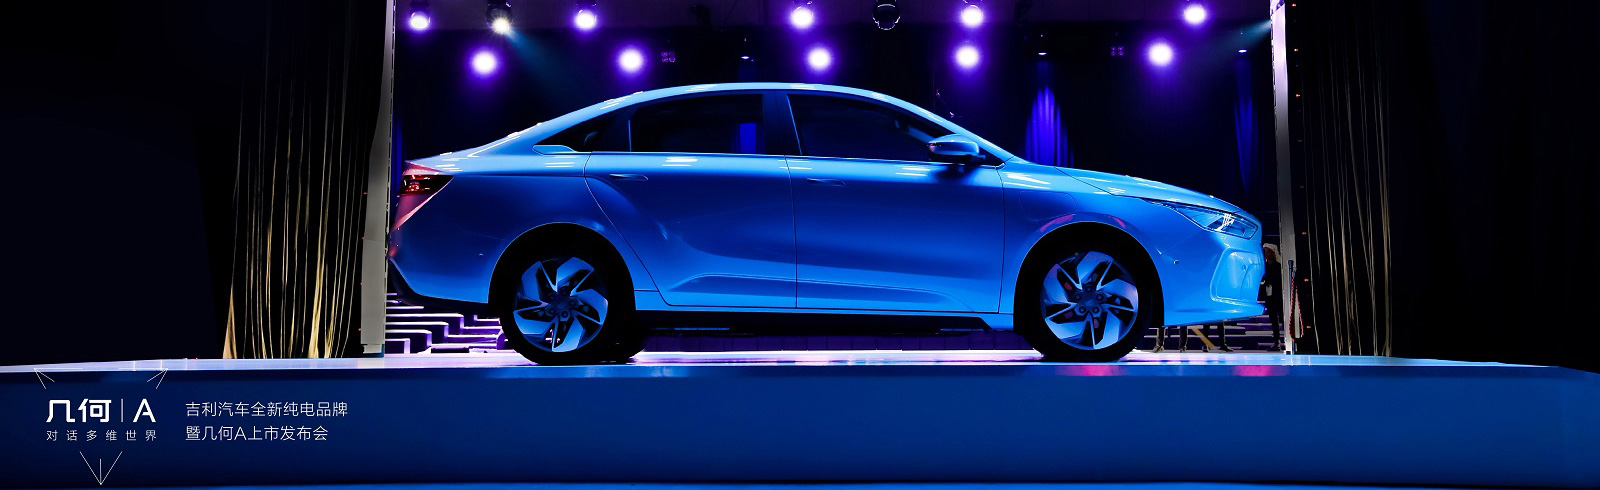 Geely announces the Geometry A, enters the global BEV market